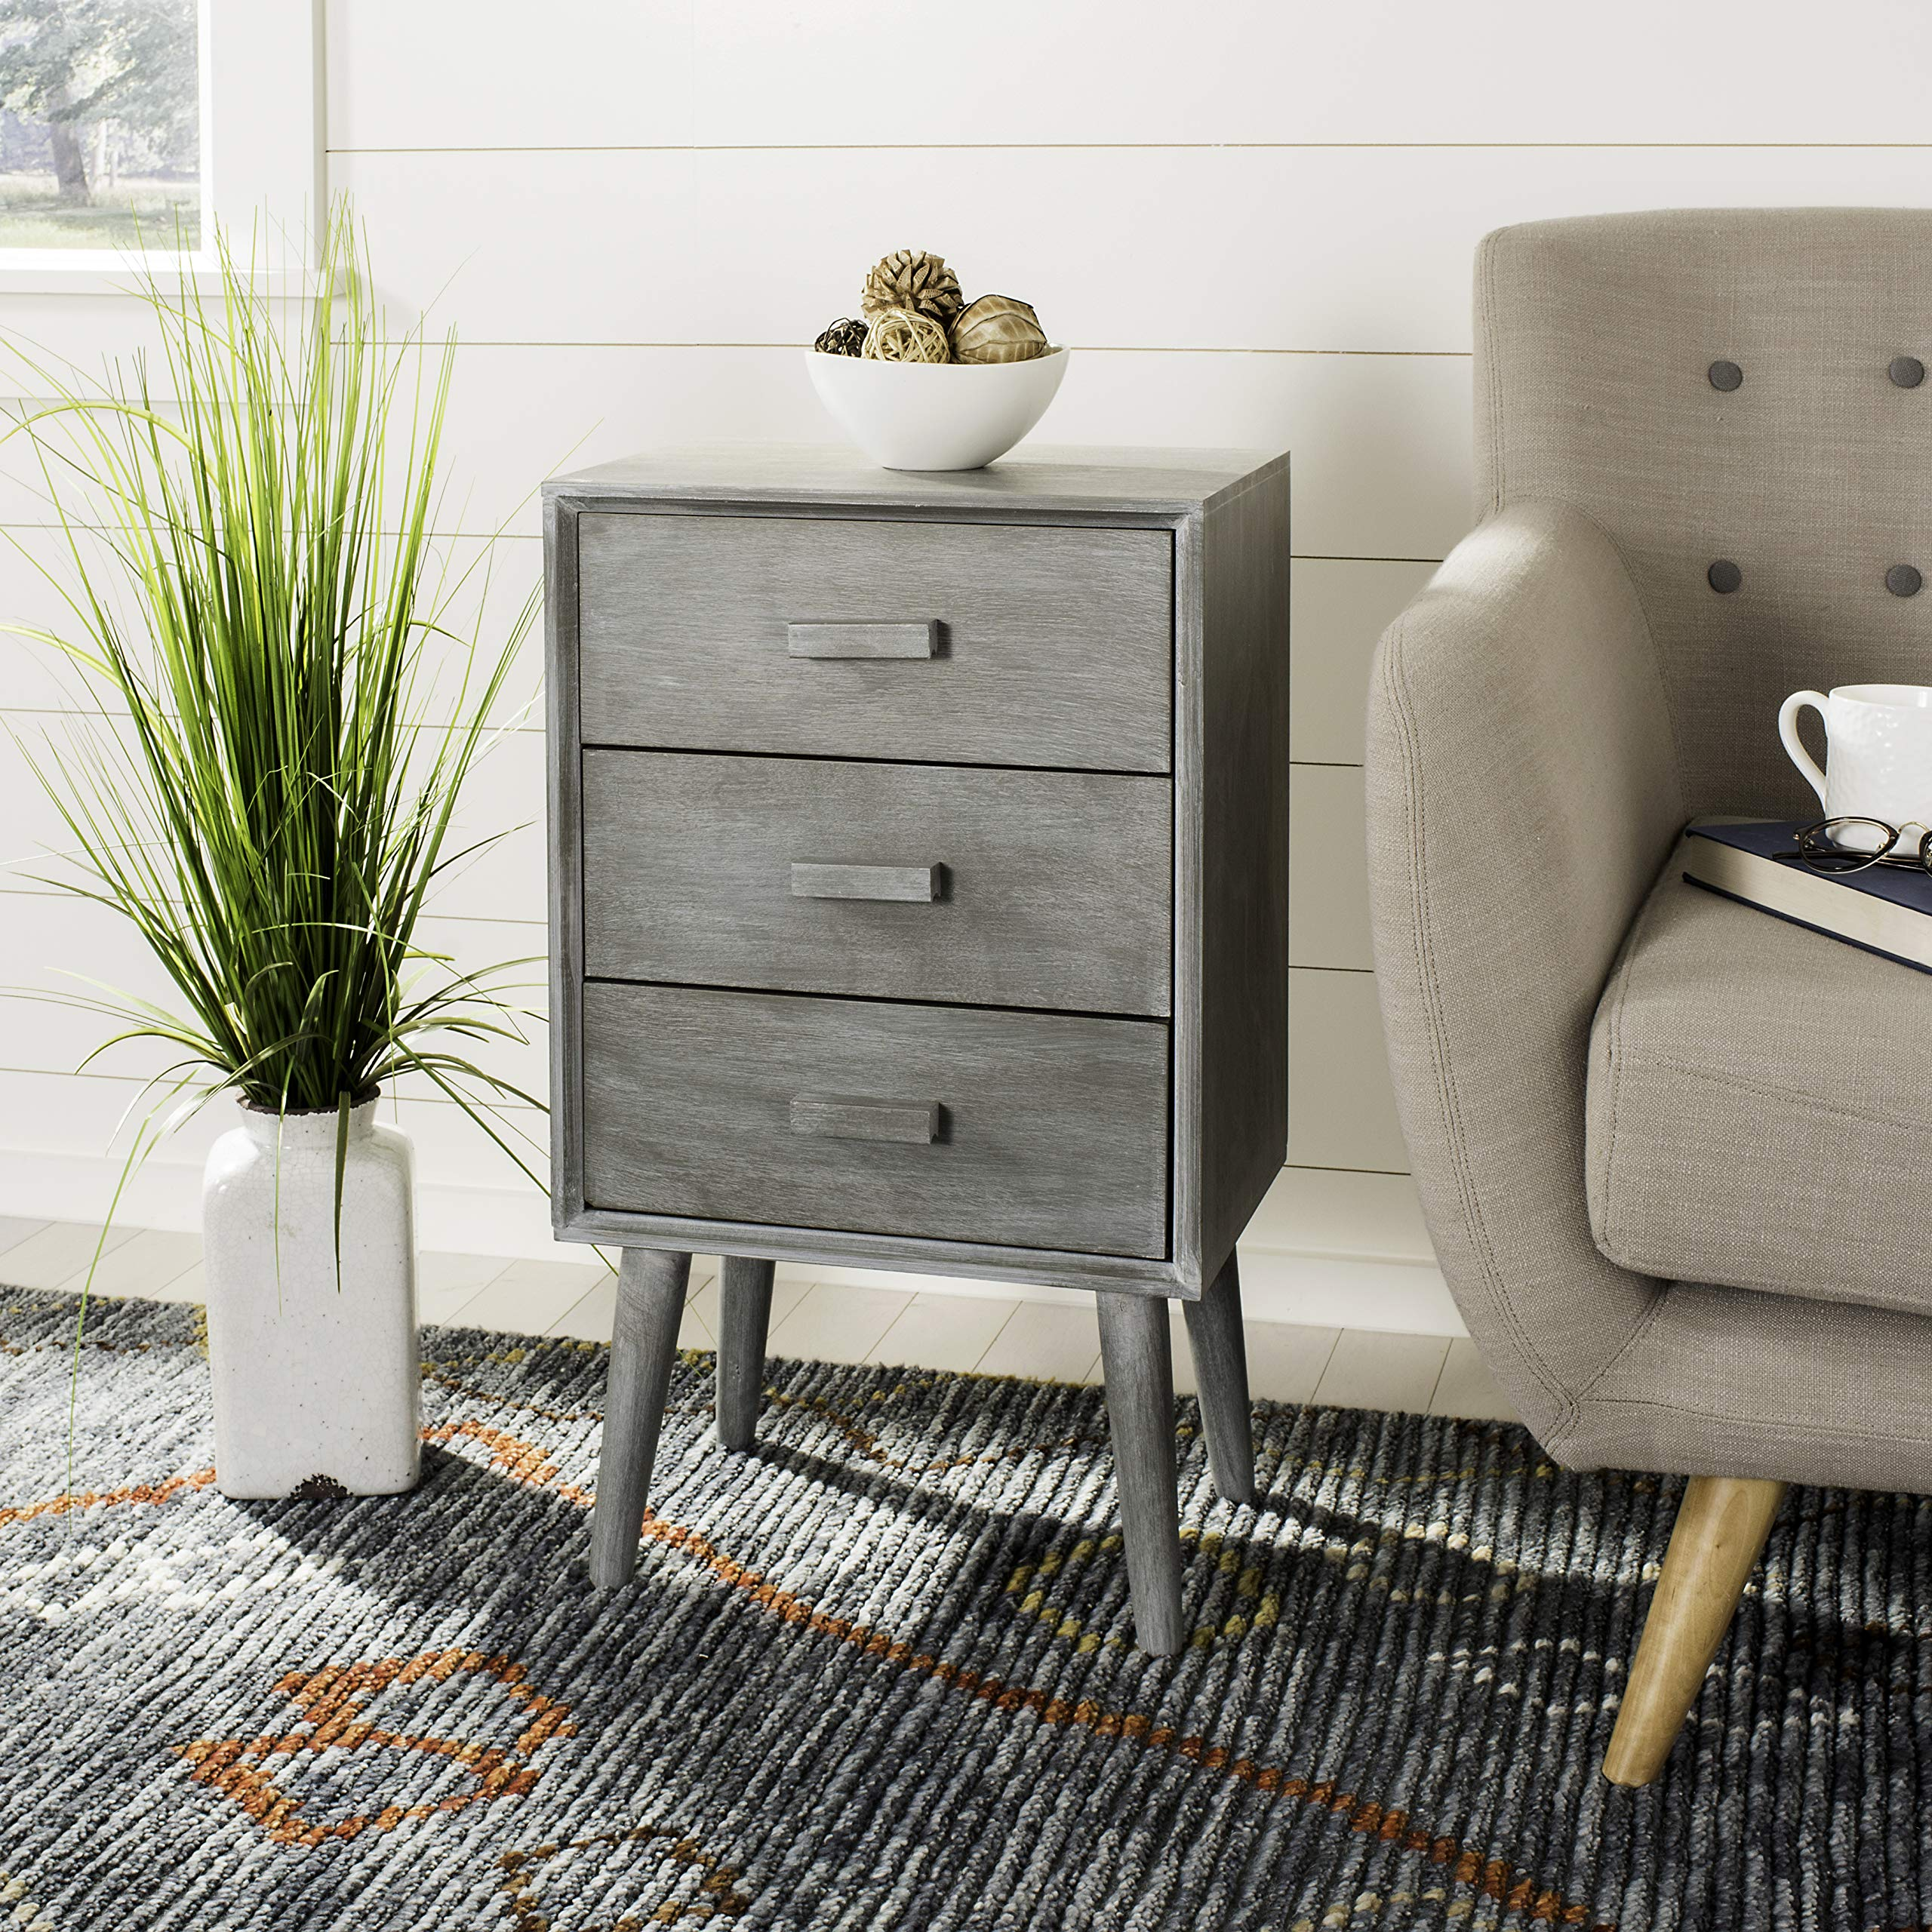 Safavieh CHS5700C Home Collection Pomona Slate Grey 3 Chest of Drawers,